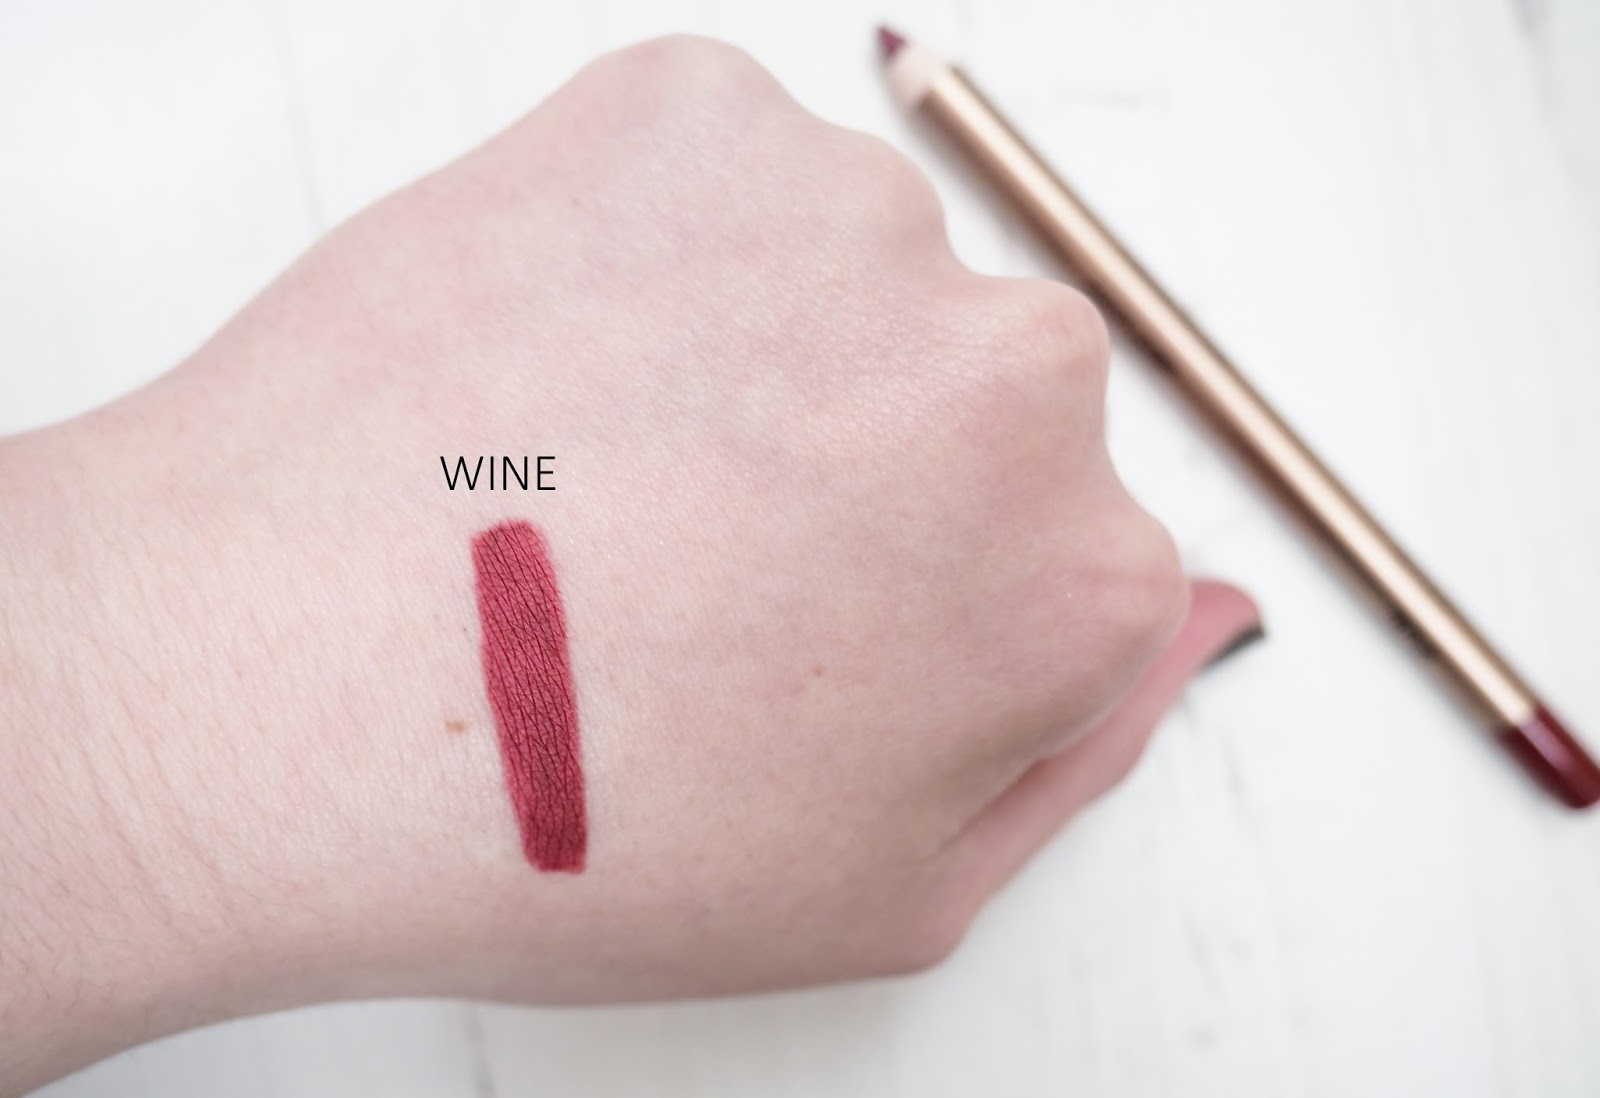 KIKO Lip Liner 304 Wine Swatch